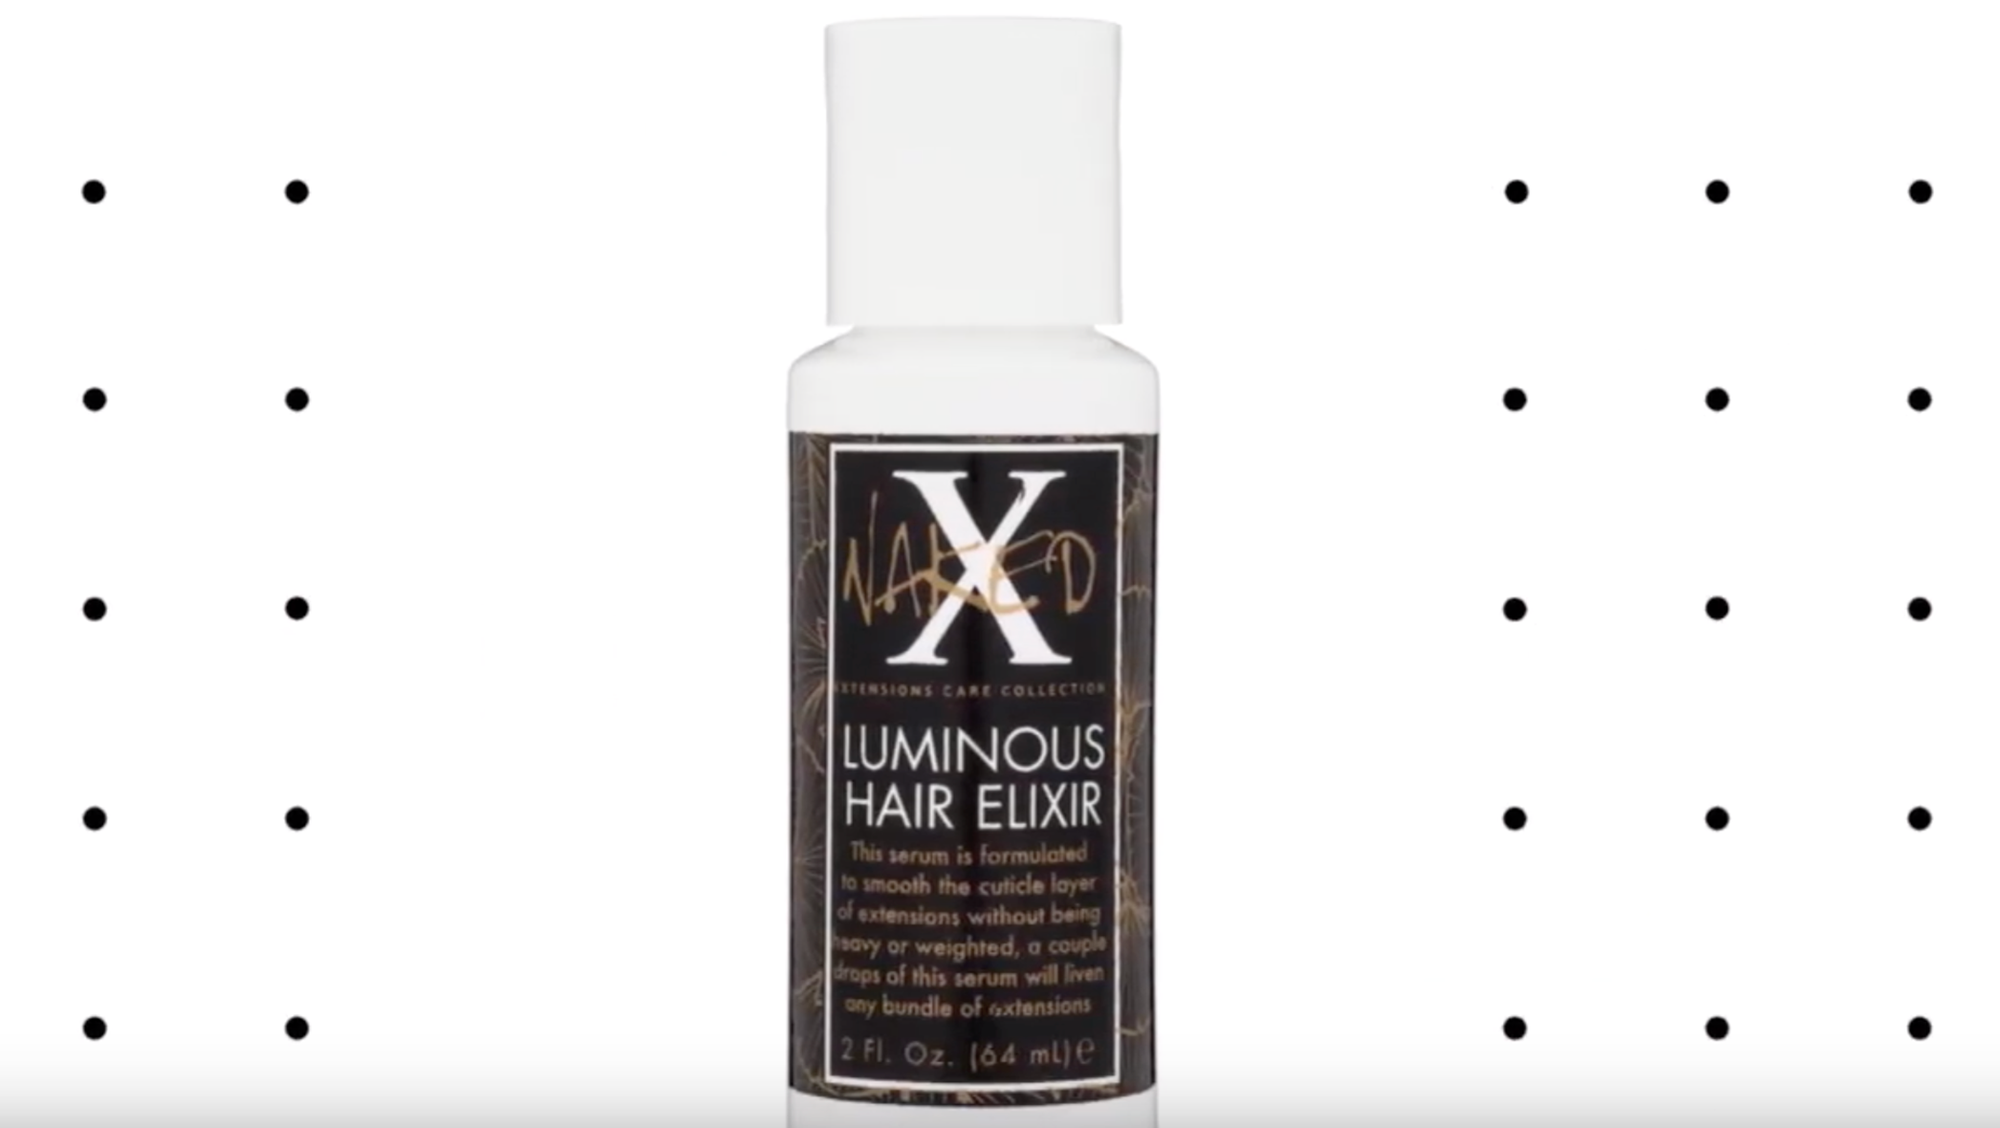 Naked X Luminous Hair Elixir - How to Add Shine to Dull Extensions